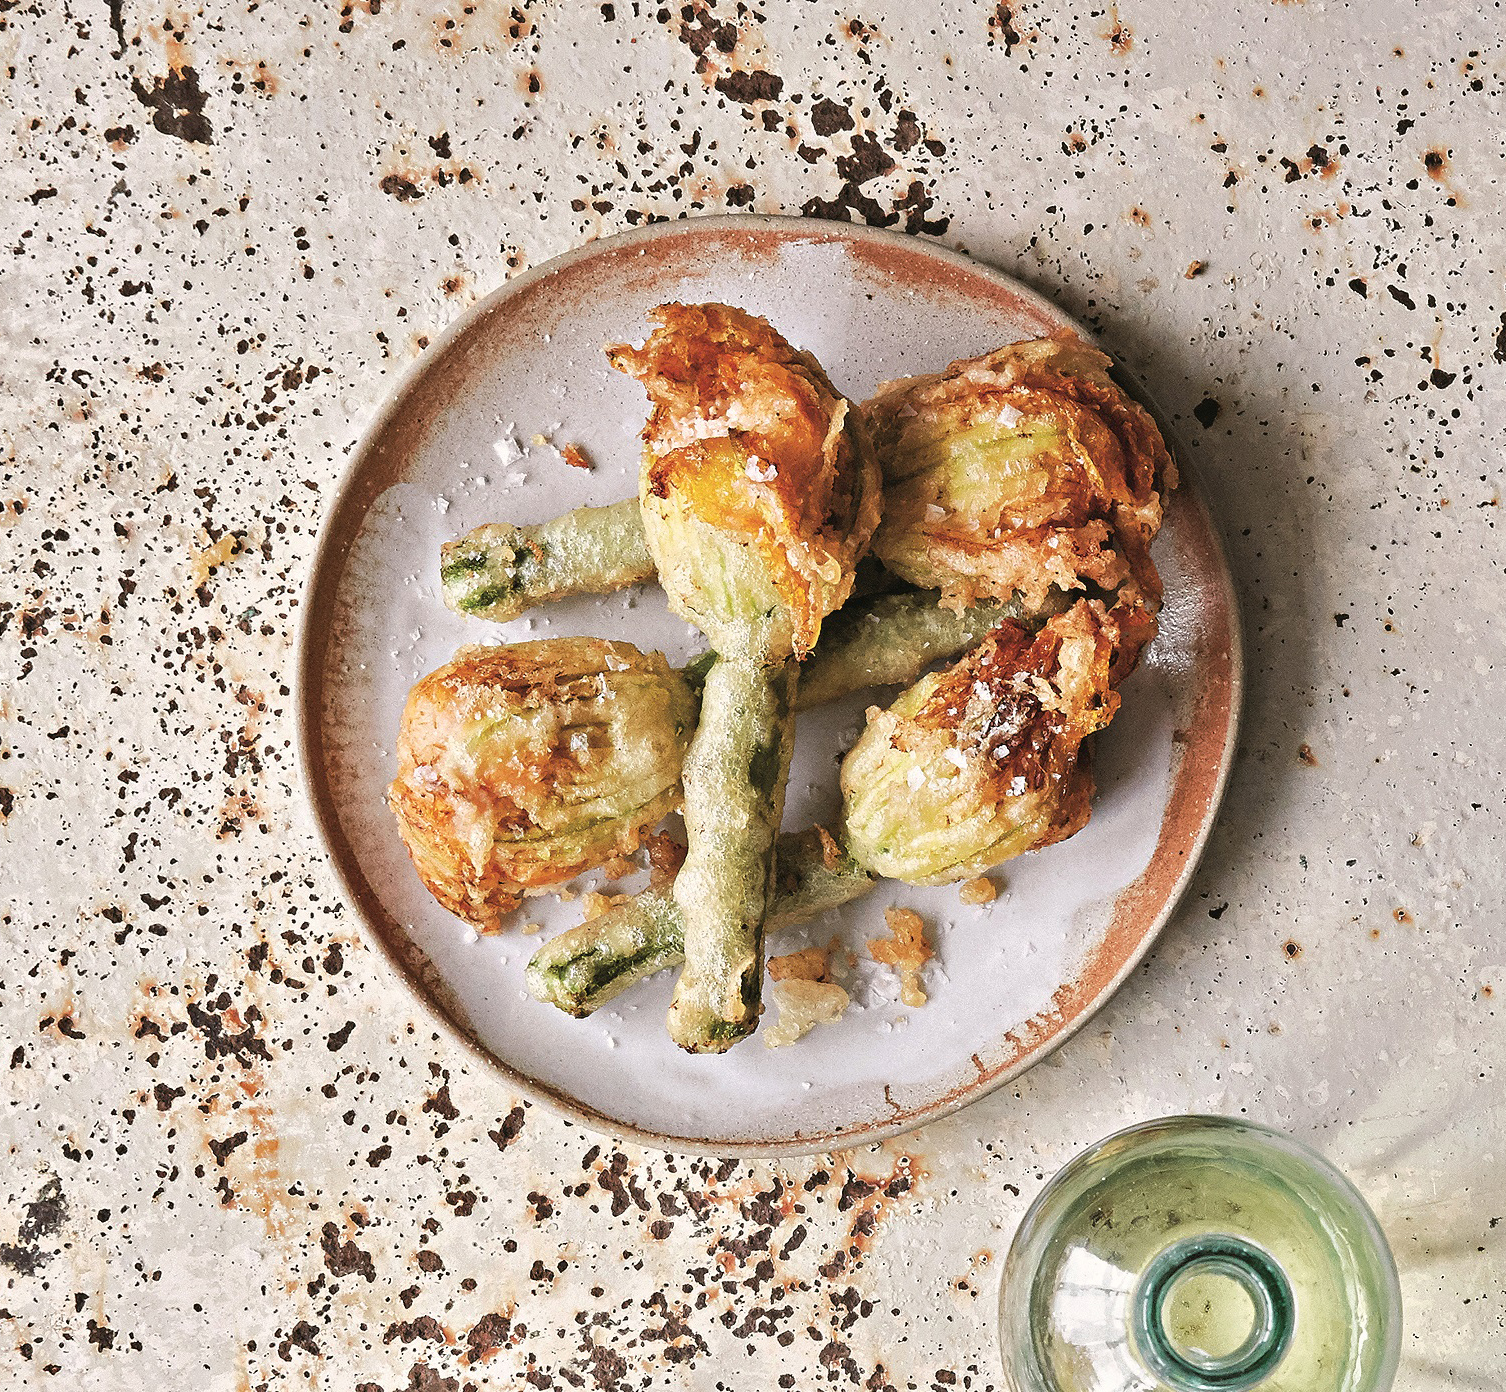 Stuffed courgette flowers from Fish and Seafood to share by Rick and Katie Toogood (Pavilion/PA)